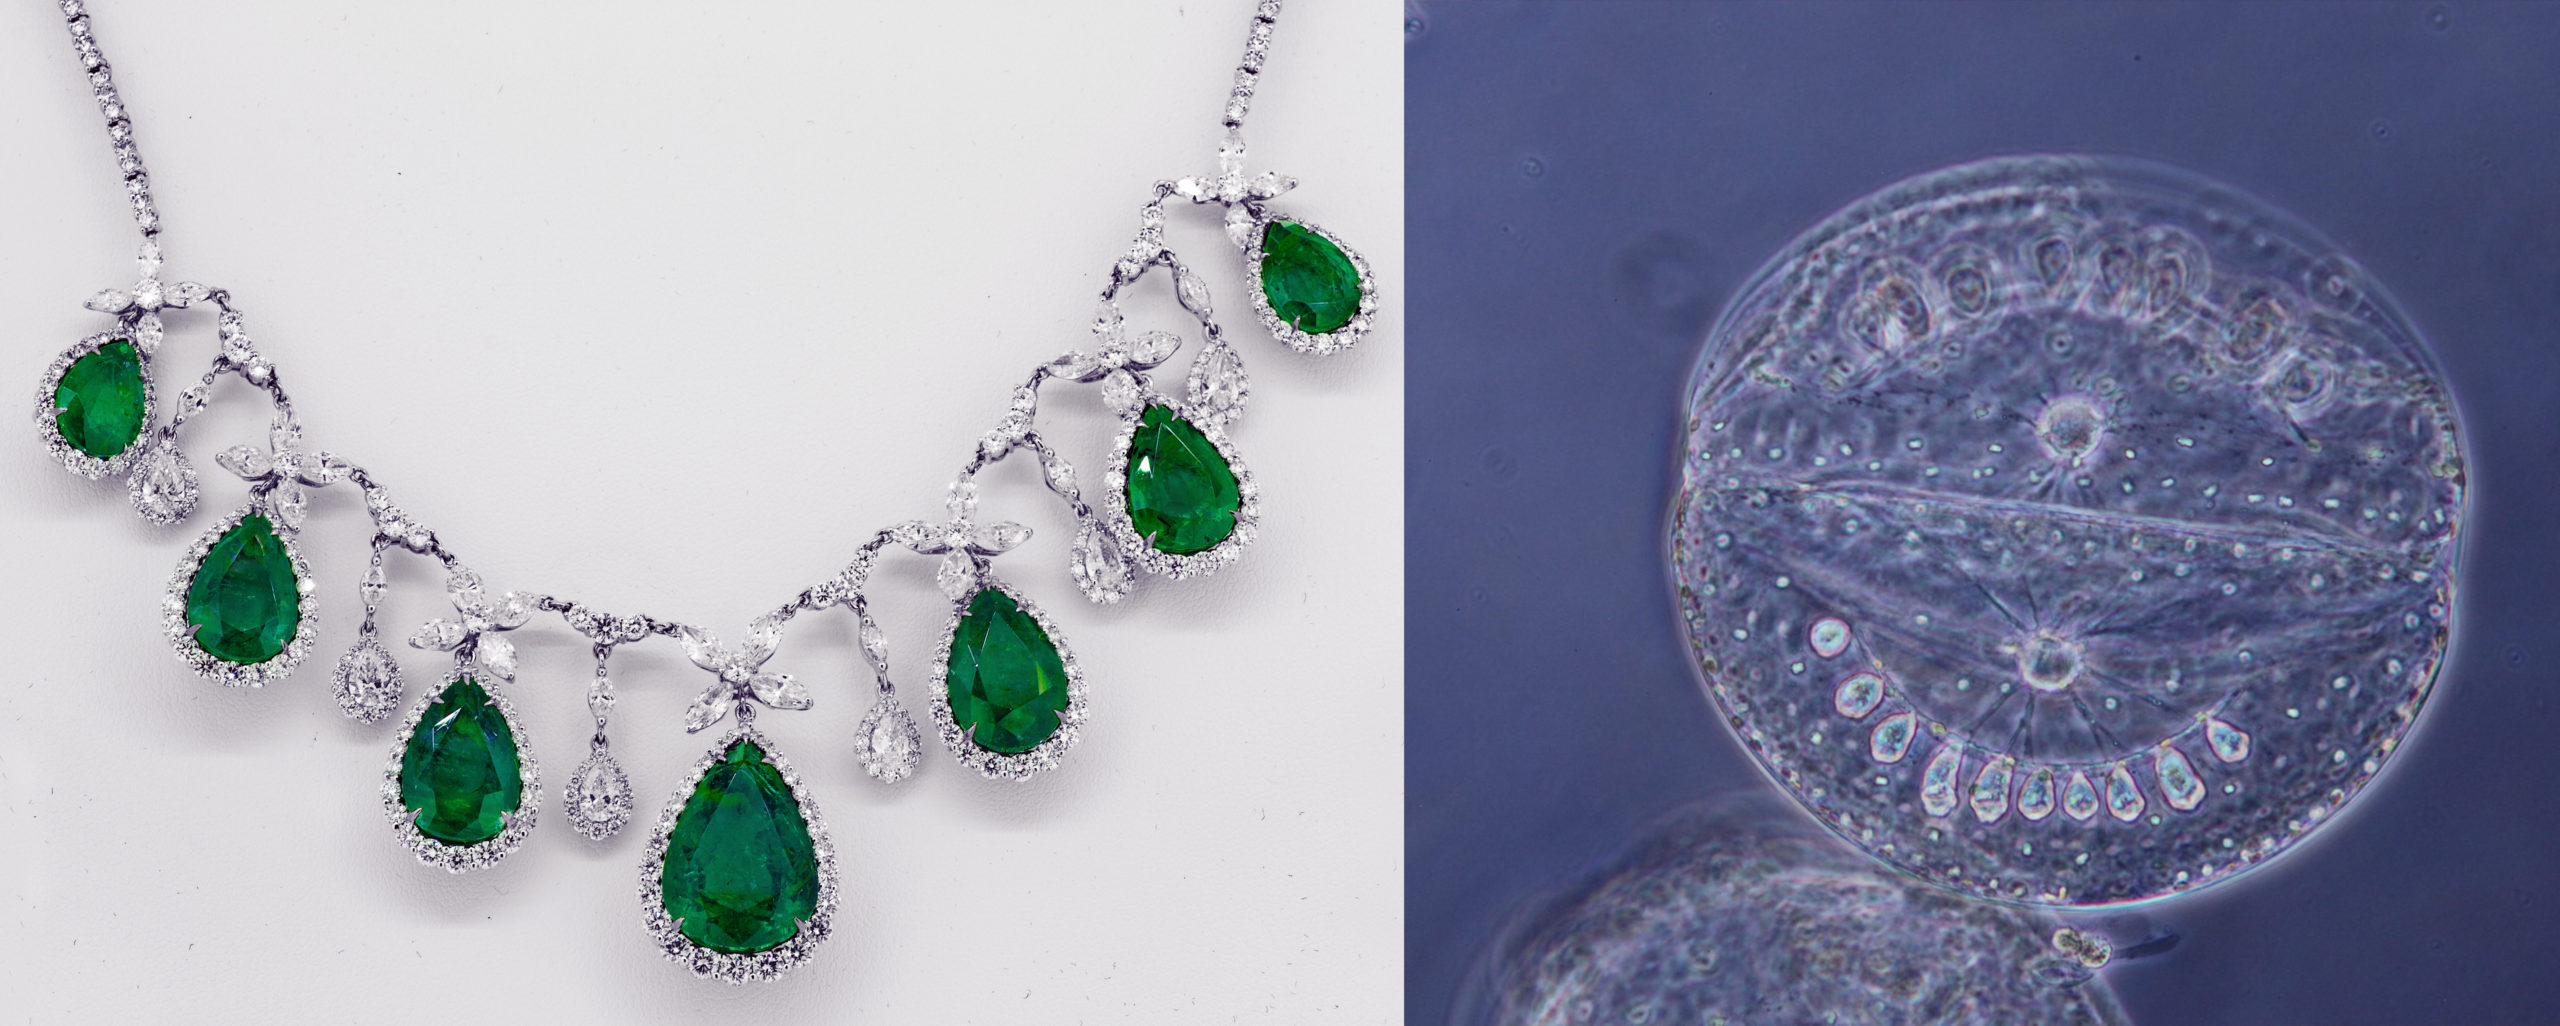 A silver and green necklace next to a microscopic image of a white organism.